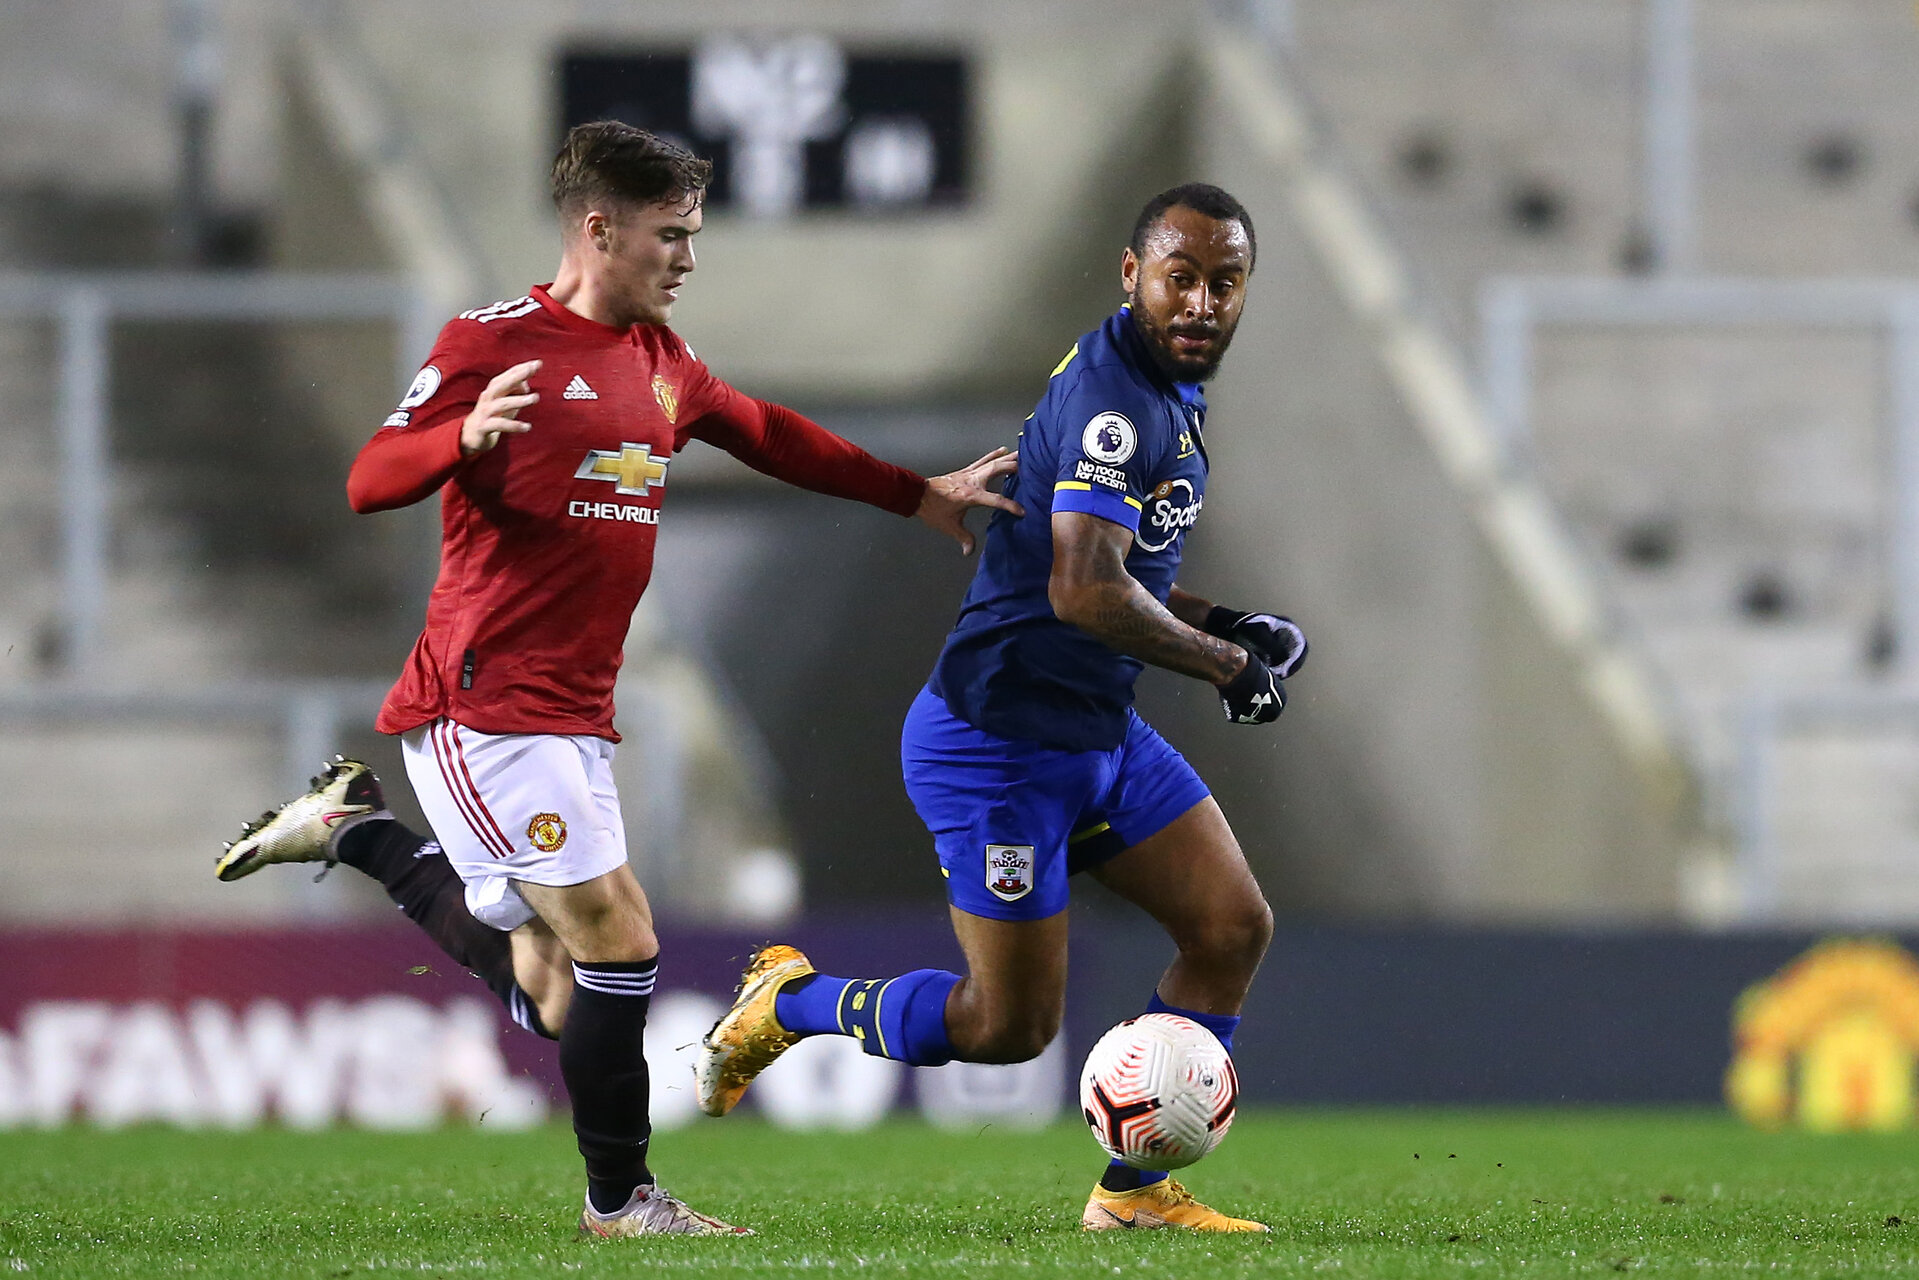 MANCHESTER, ENGLAND - DECEMBER 04: during the Premier League 2 match between Manchester United and Southampton B Team at Leigh Sports Village on December 04, 2020 in Manchester, England. (Photo by Isabelle Field/Southampton FC via Getty Images)